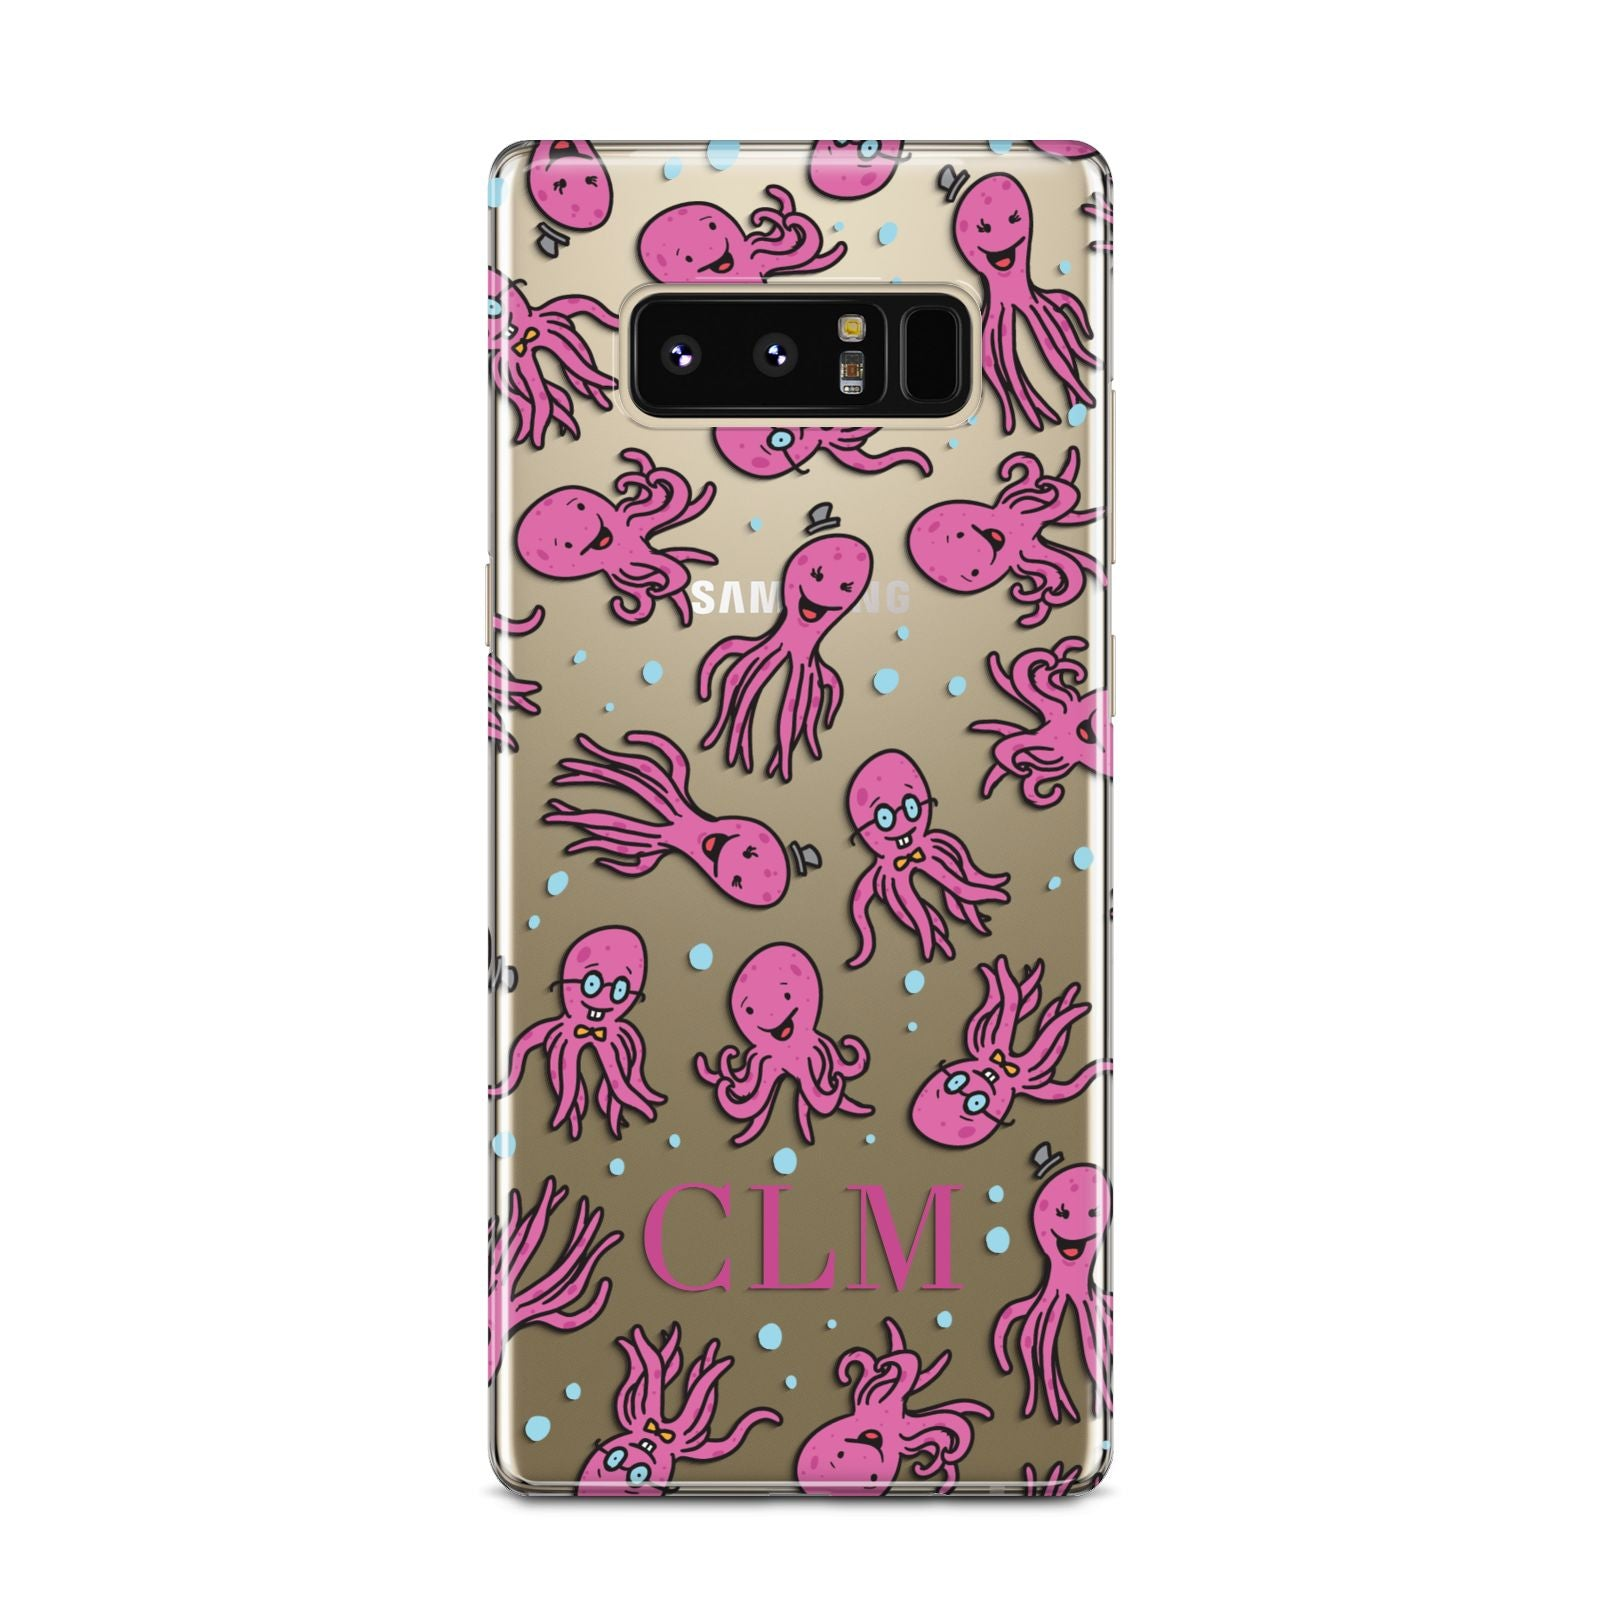 Personalised Octopus Initials Samsung Galaxy Note 8 Case